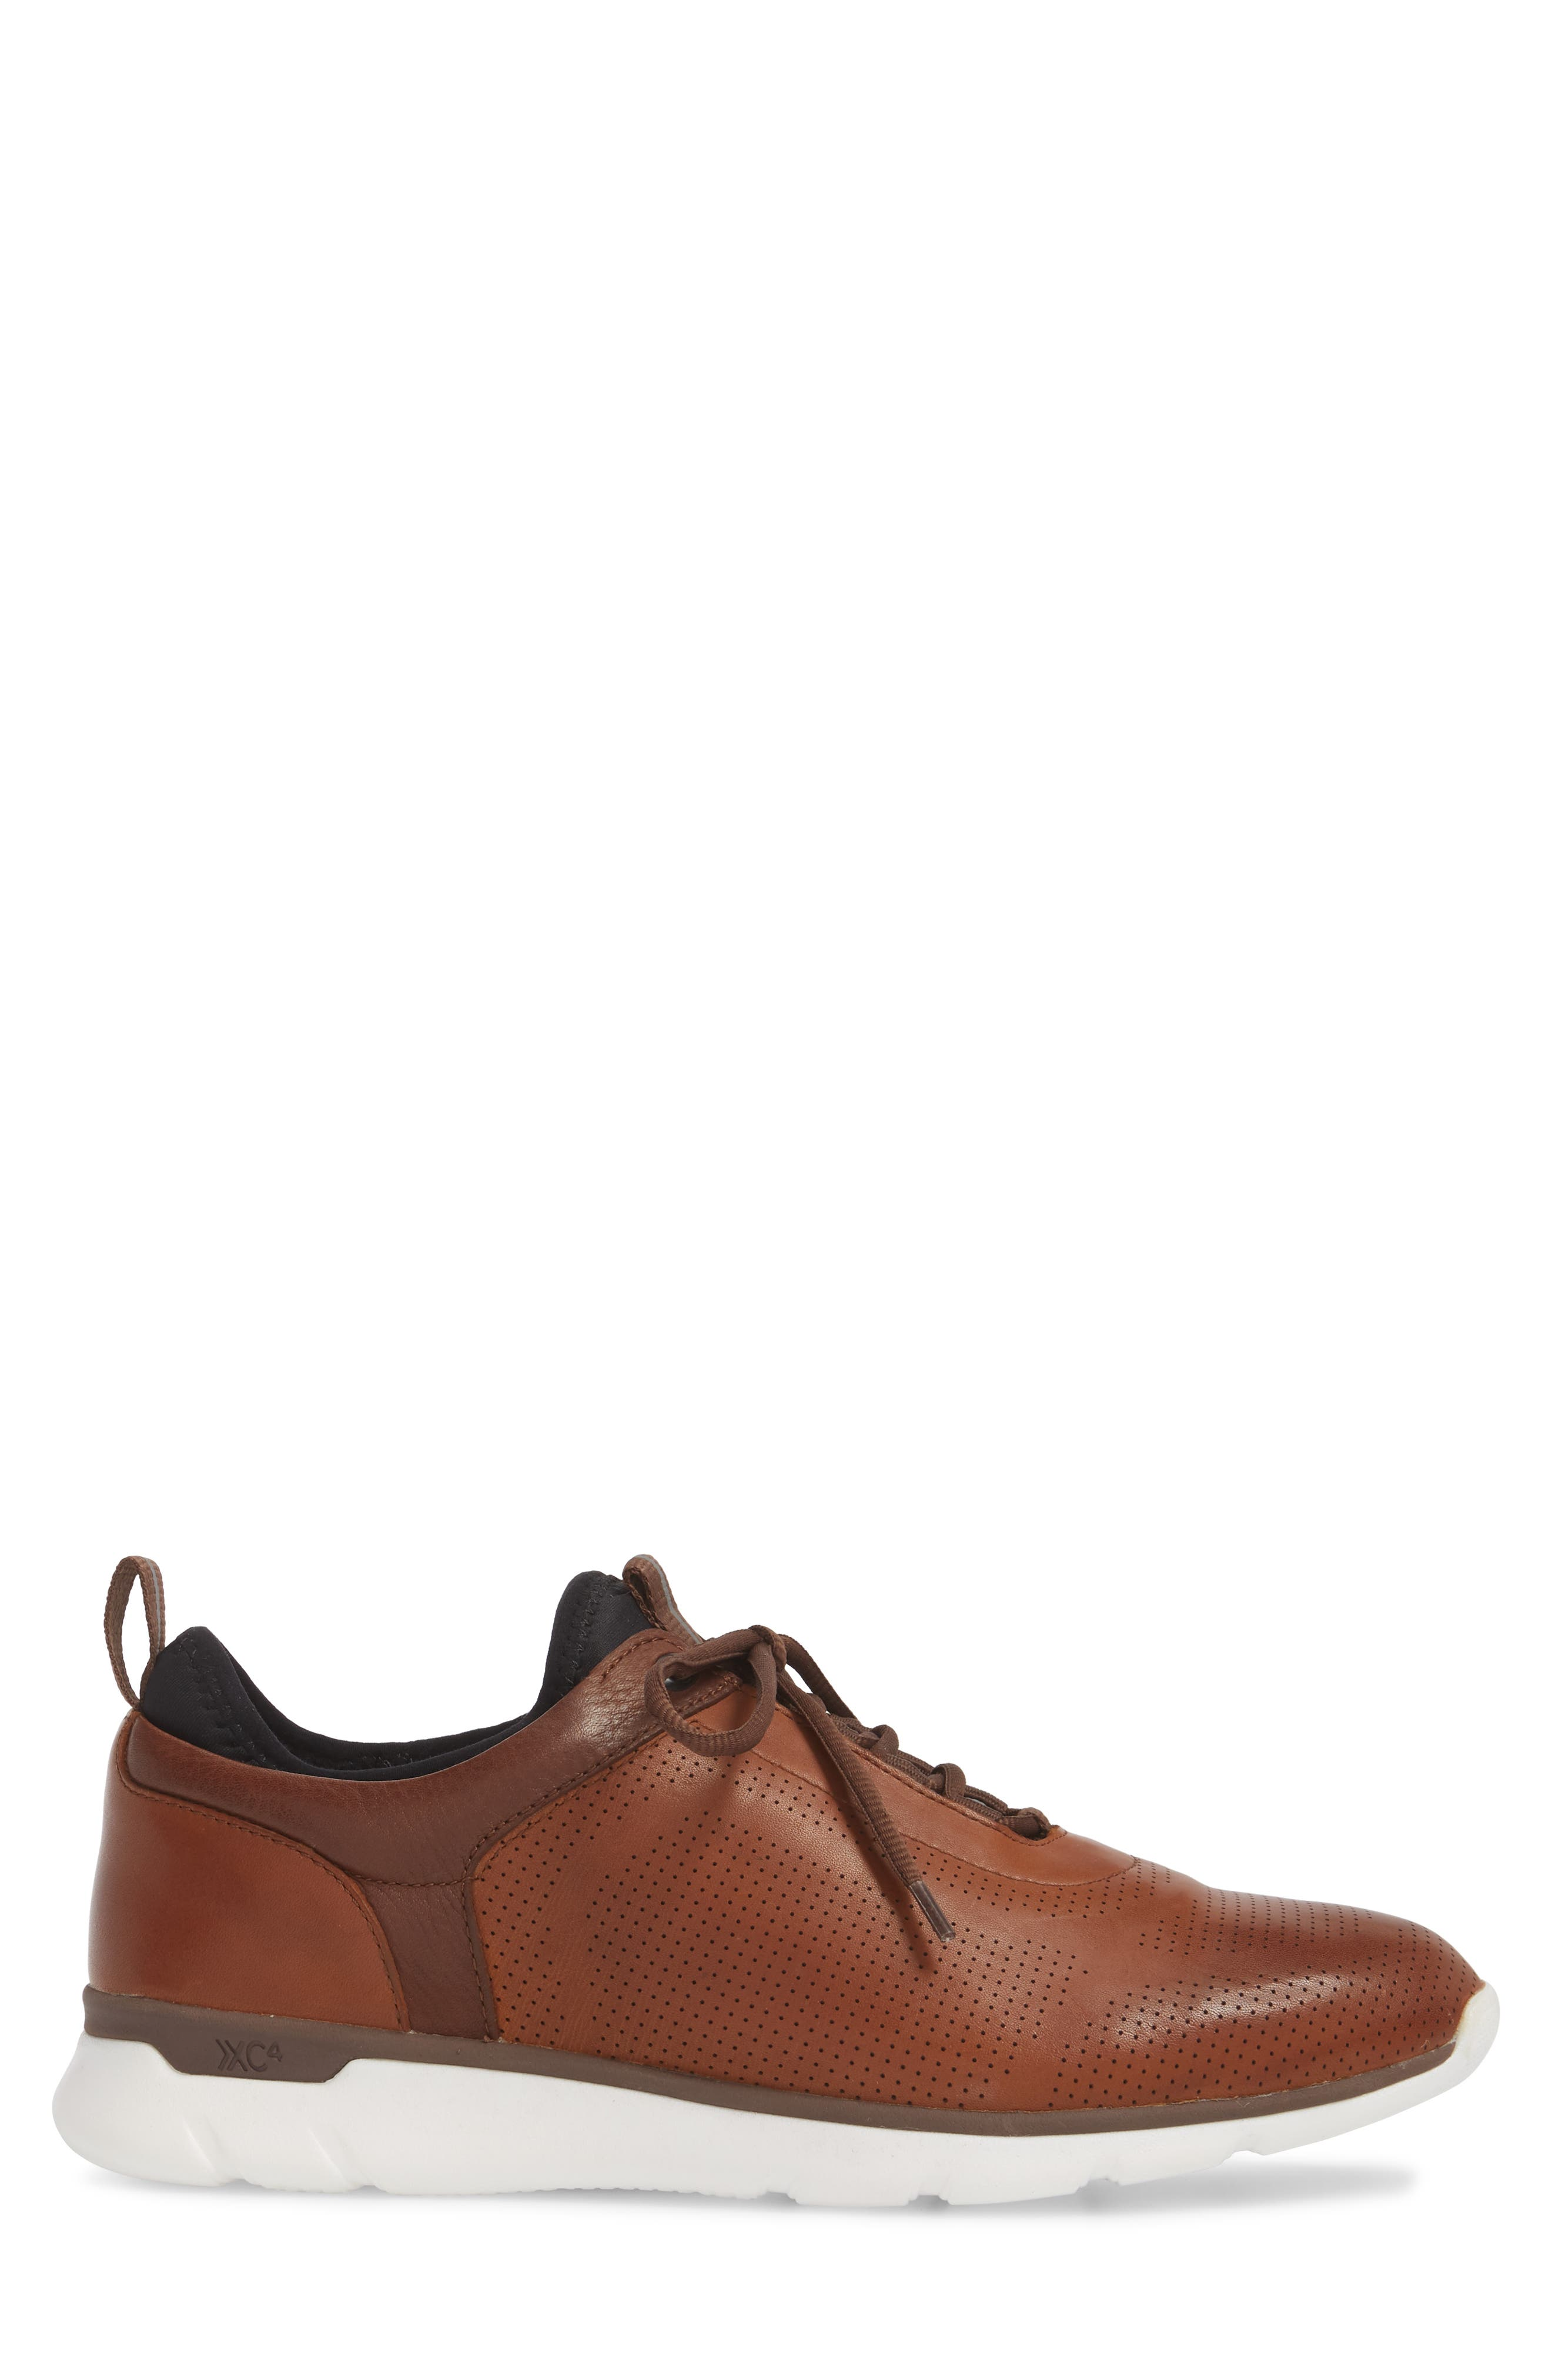 Prentiss XC4<sup>®</sup> Waterproof Sneaker,                             Alternate thumbnail 3, color,                             MAHOGANY LEATHER